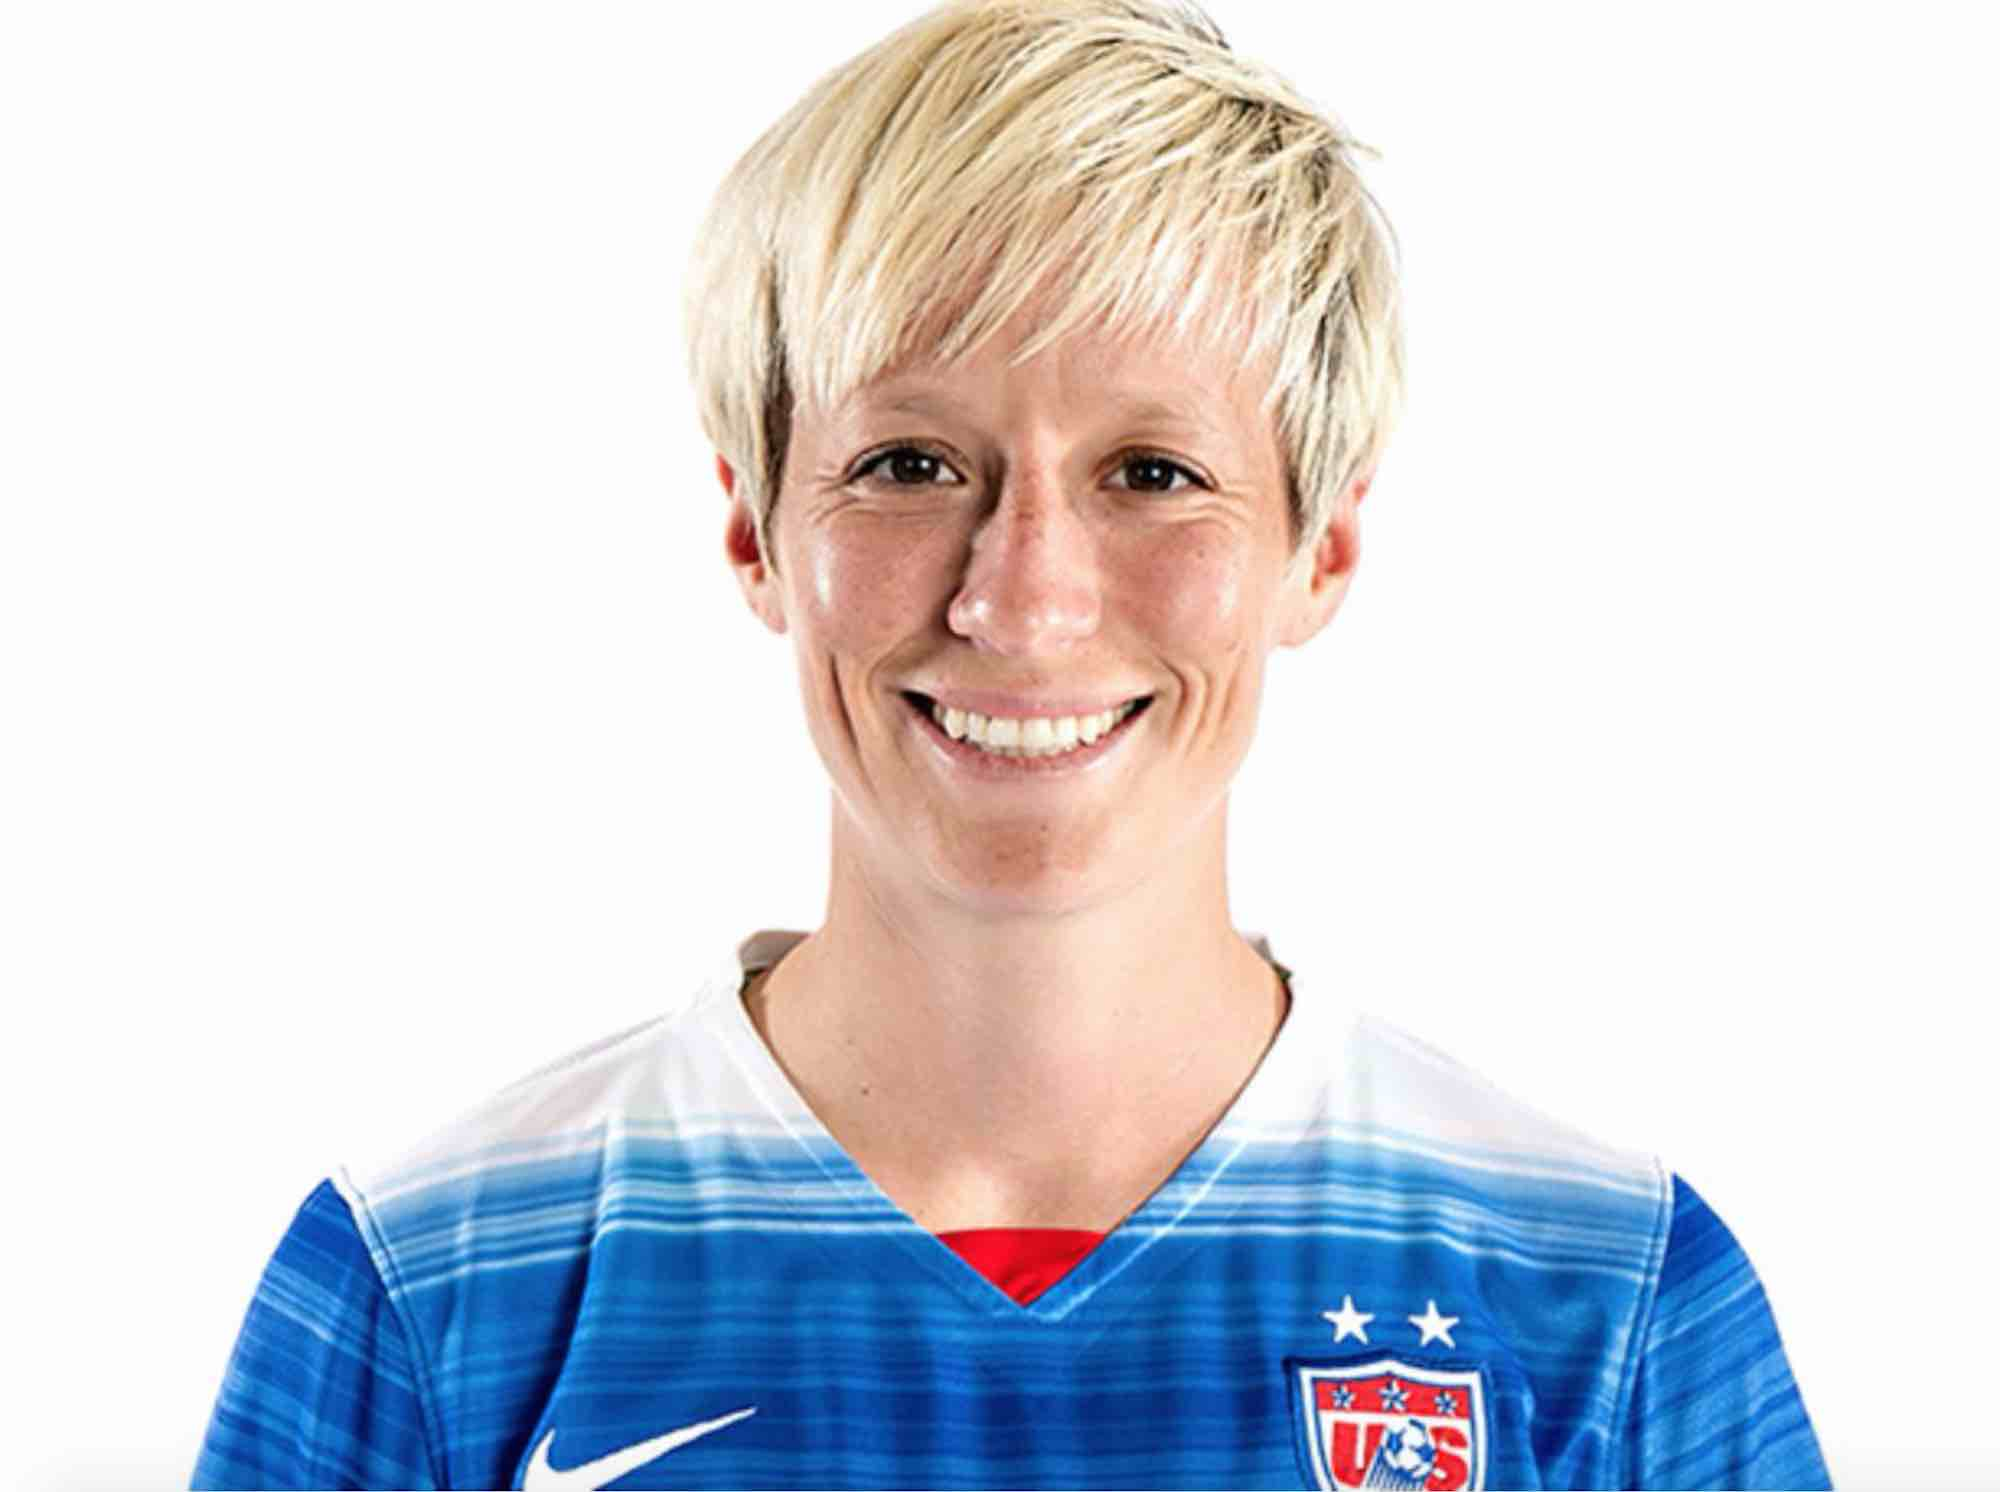 5 USWNT players named to WC All-Star Team